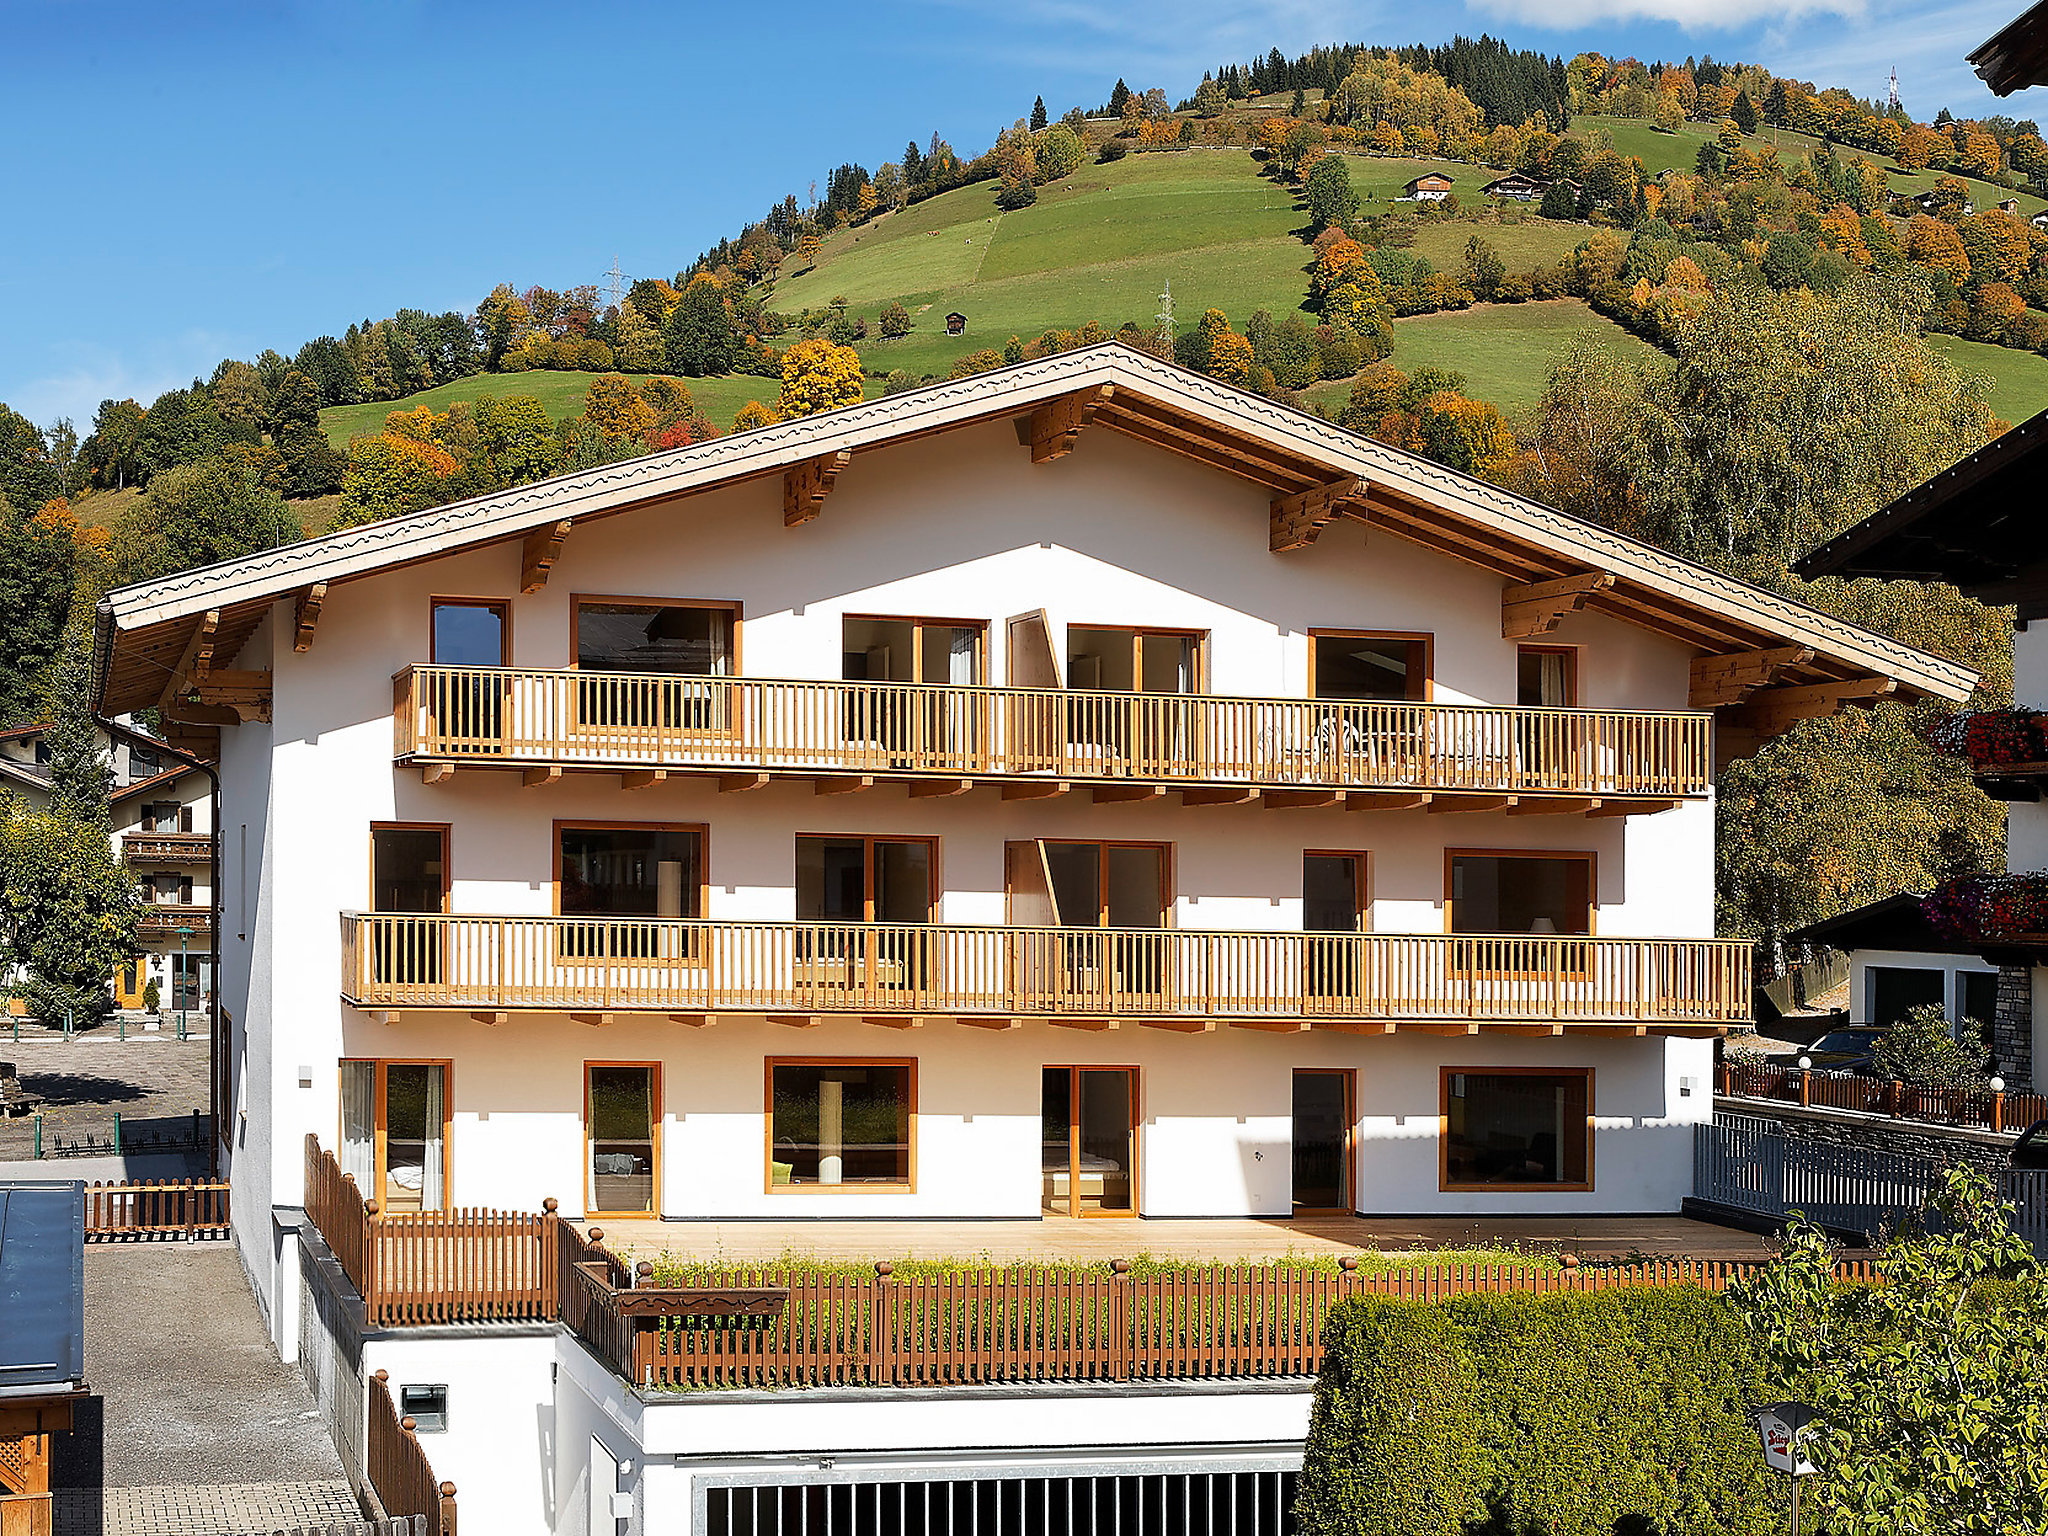 Apartment haus sonne zell am see for Apartment haus